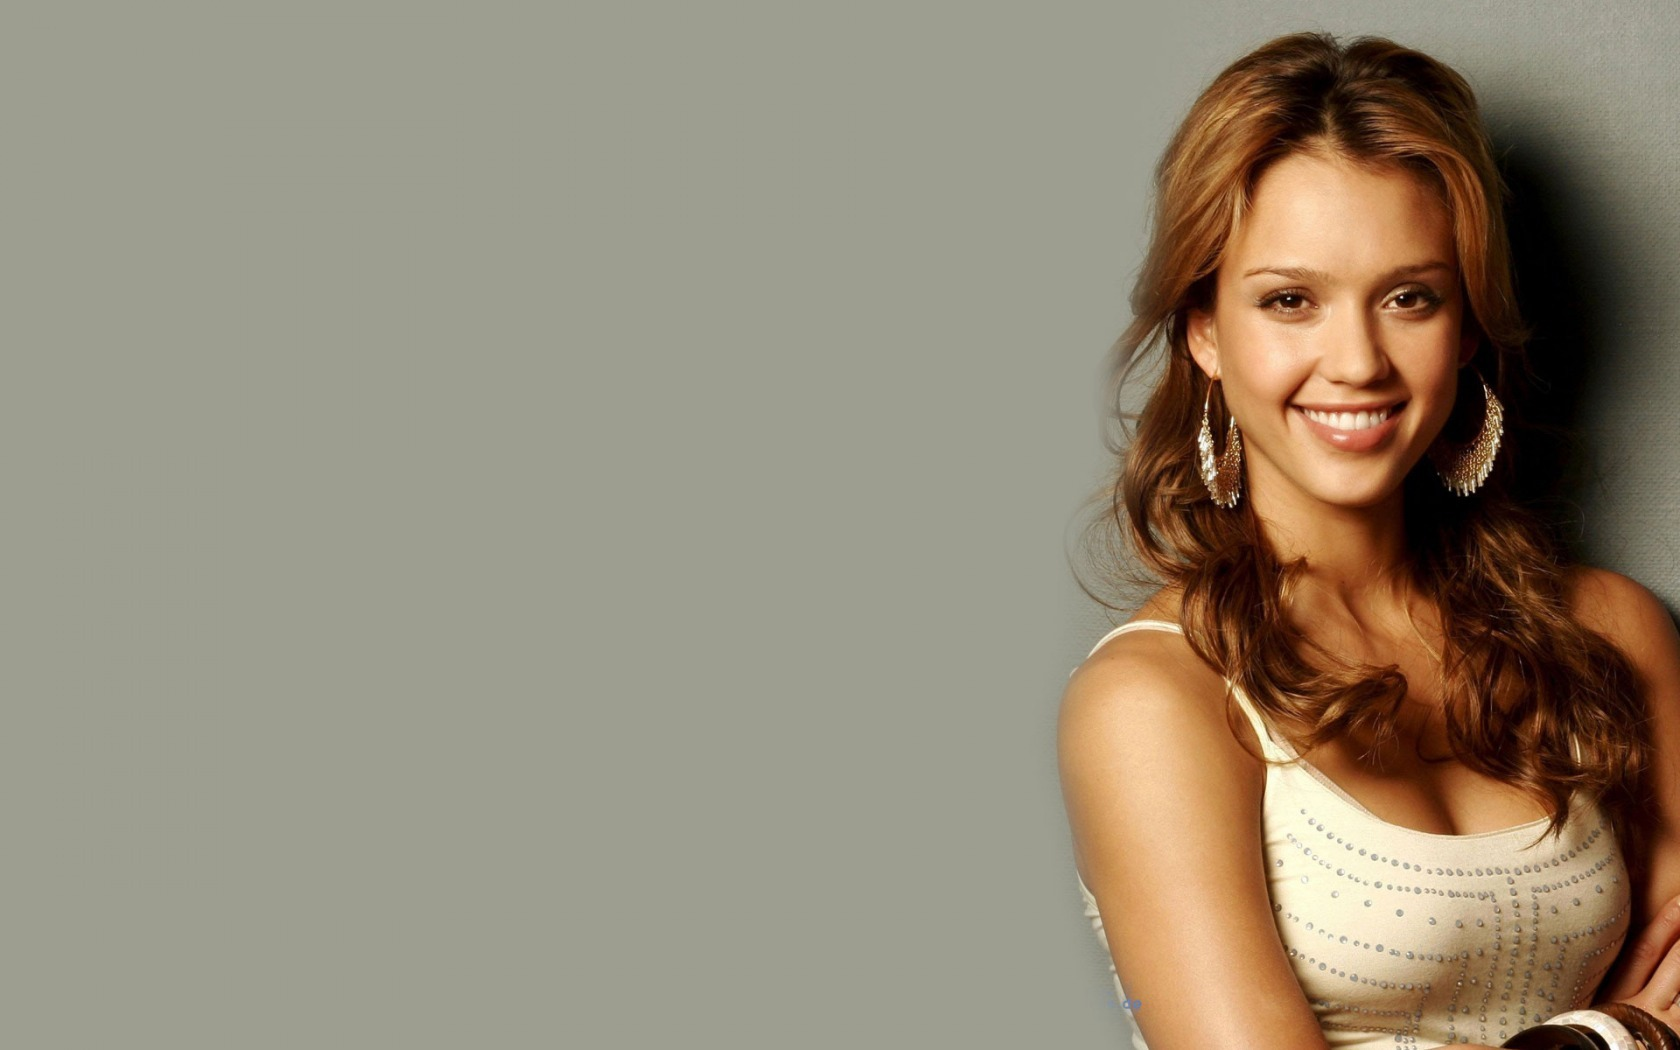 Sexy Jessica Alba Wallpaper Hd for PC (54)